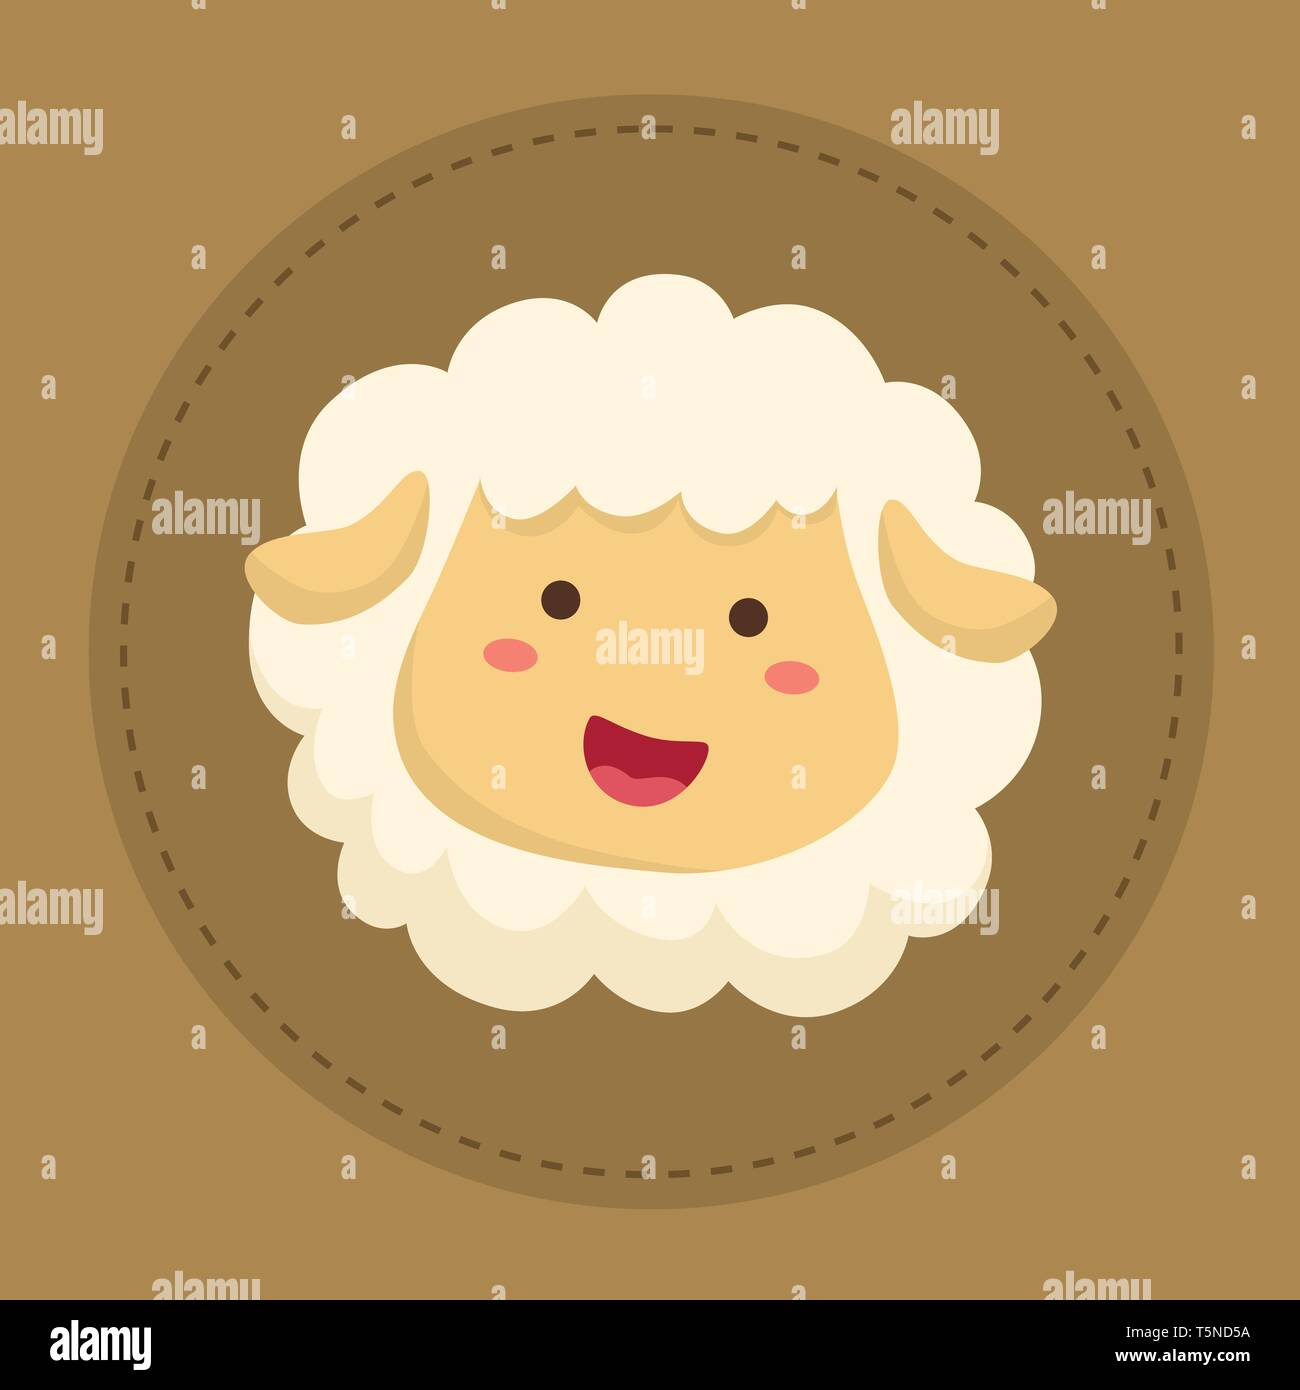 Cute Sheep Smiling on Brown Circle background vector illustration - Stock Vector